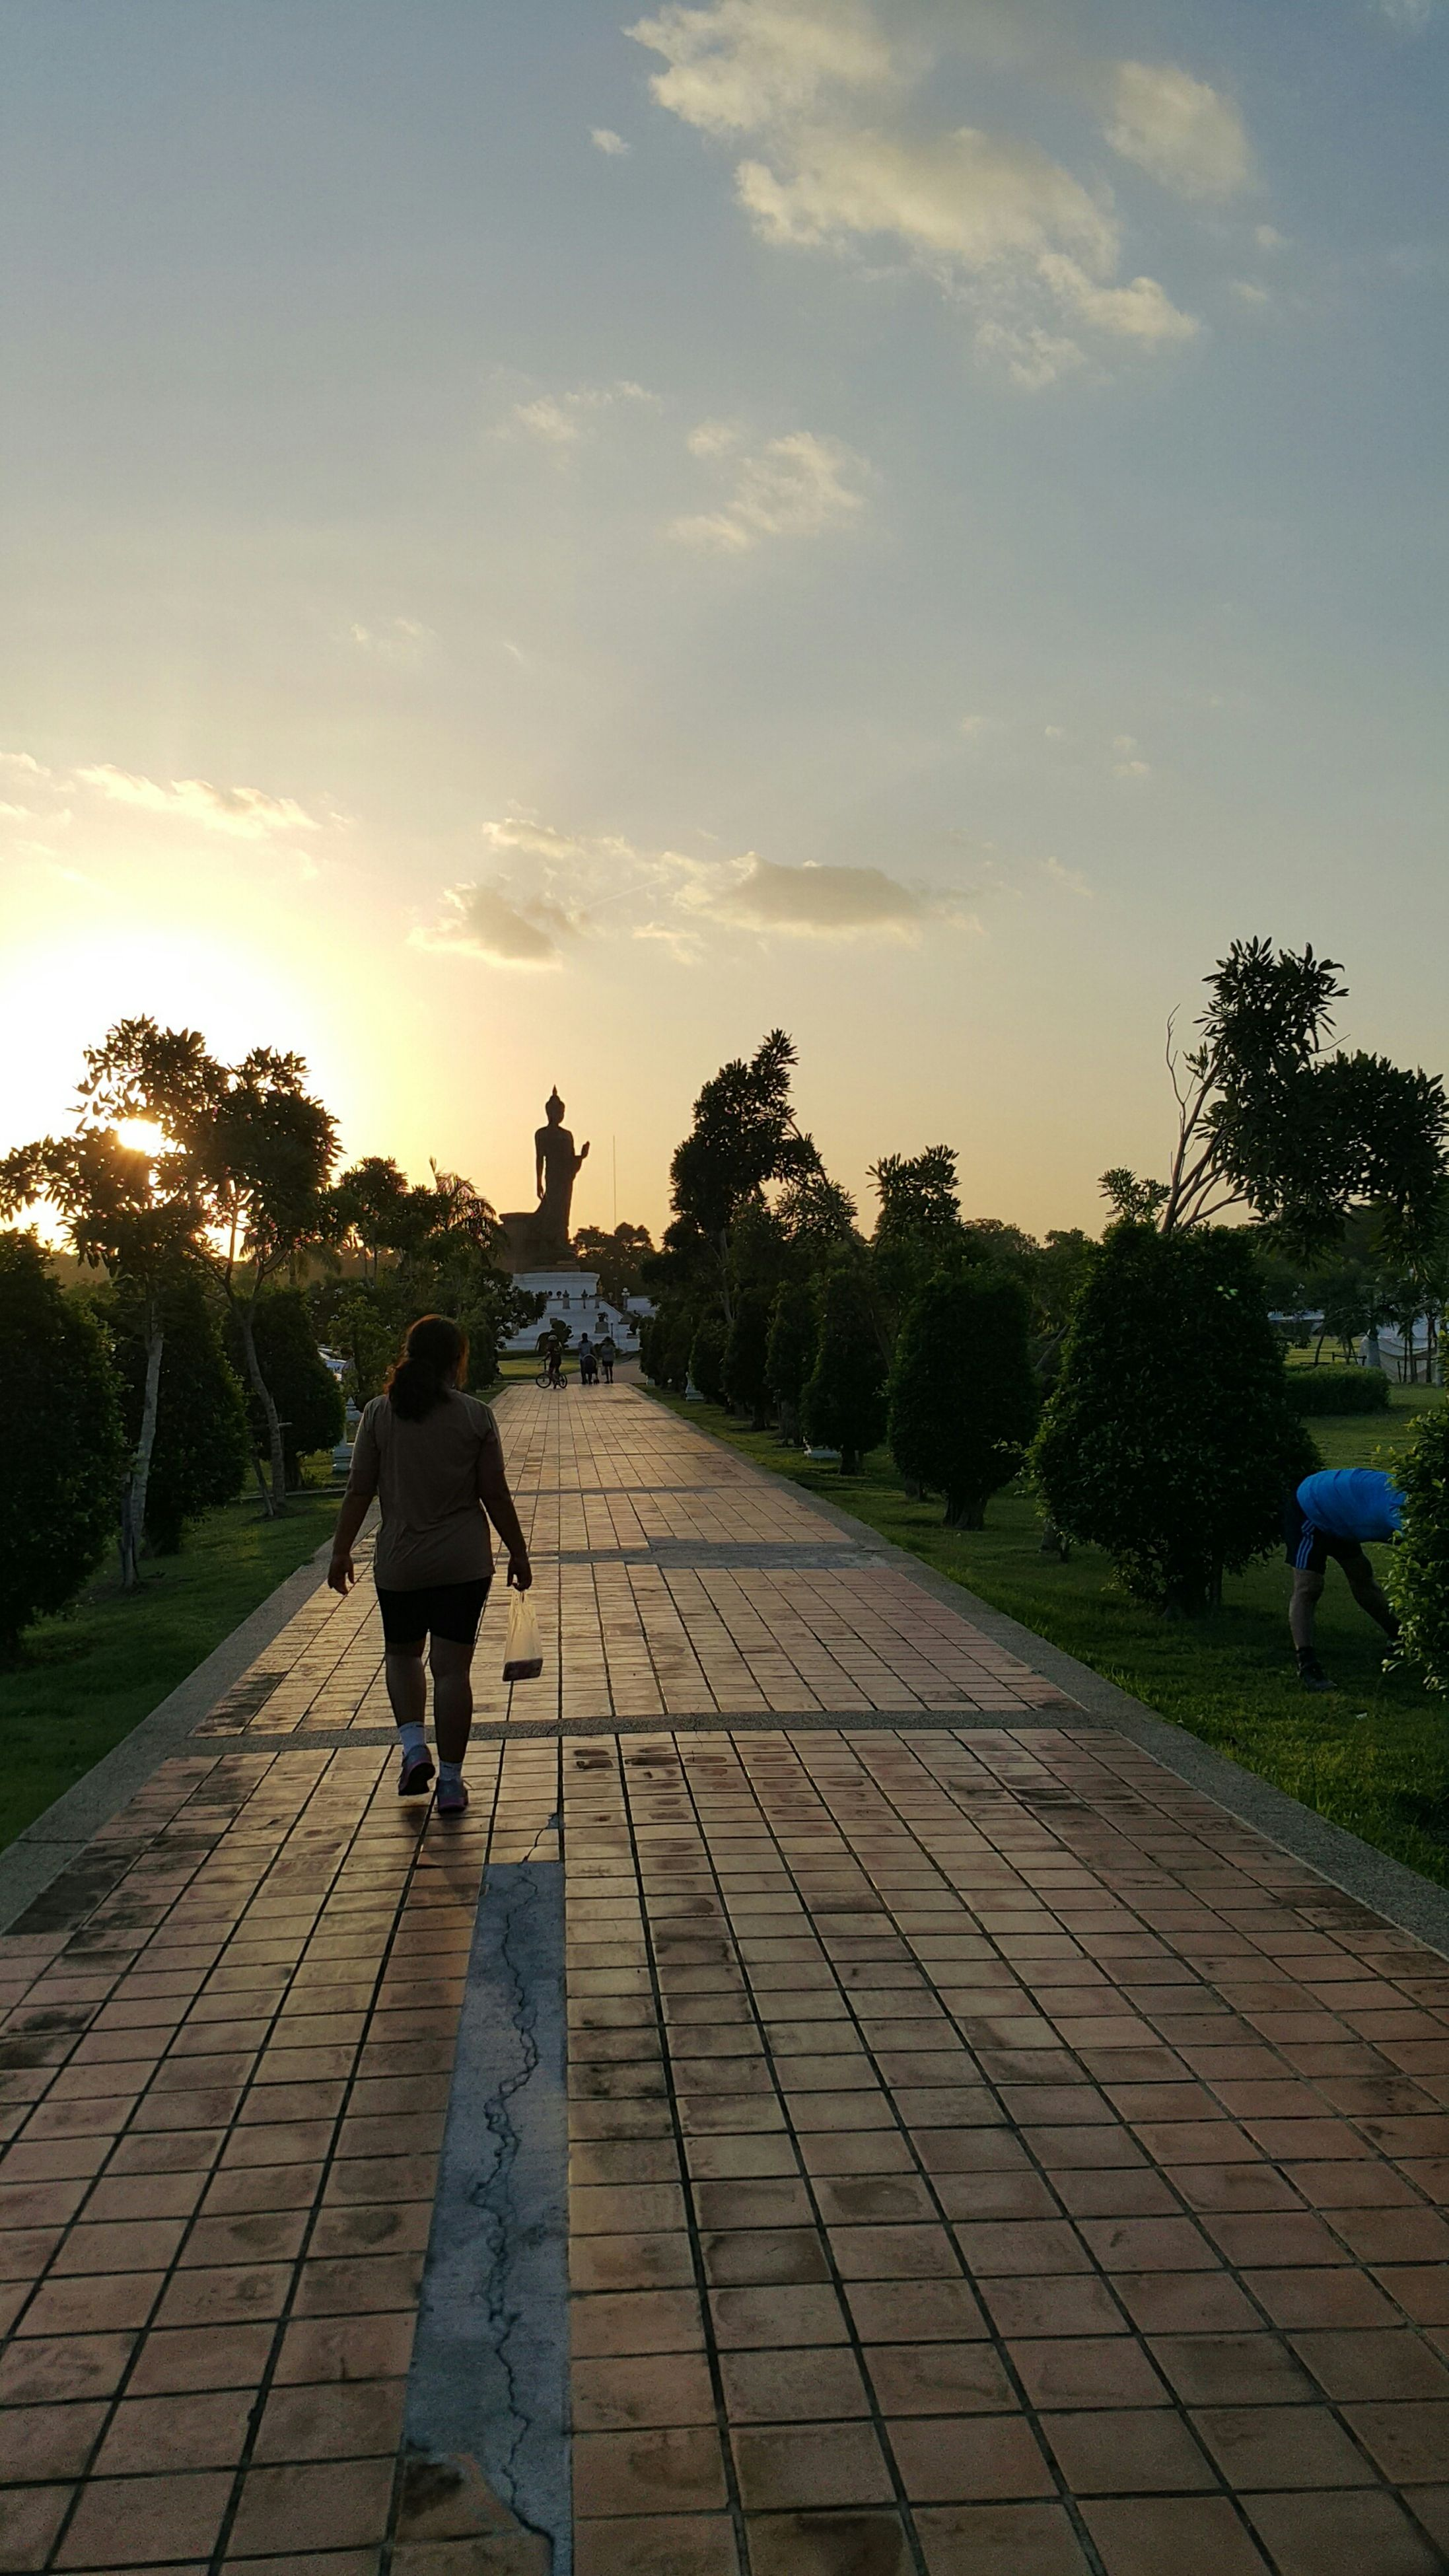 rear view, lifestyles, full length, walking, leisure activity, sky, the way forward, tree, person, men, silhouette, footpath, cobblestone, sunlight, standing, casual clothing, outdoors, sunset